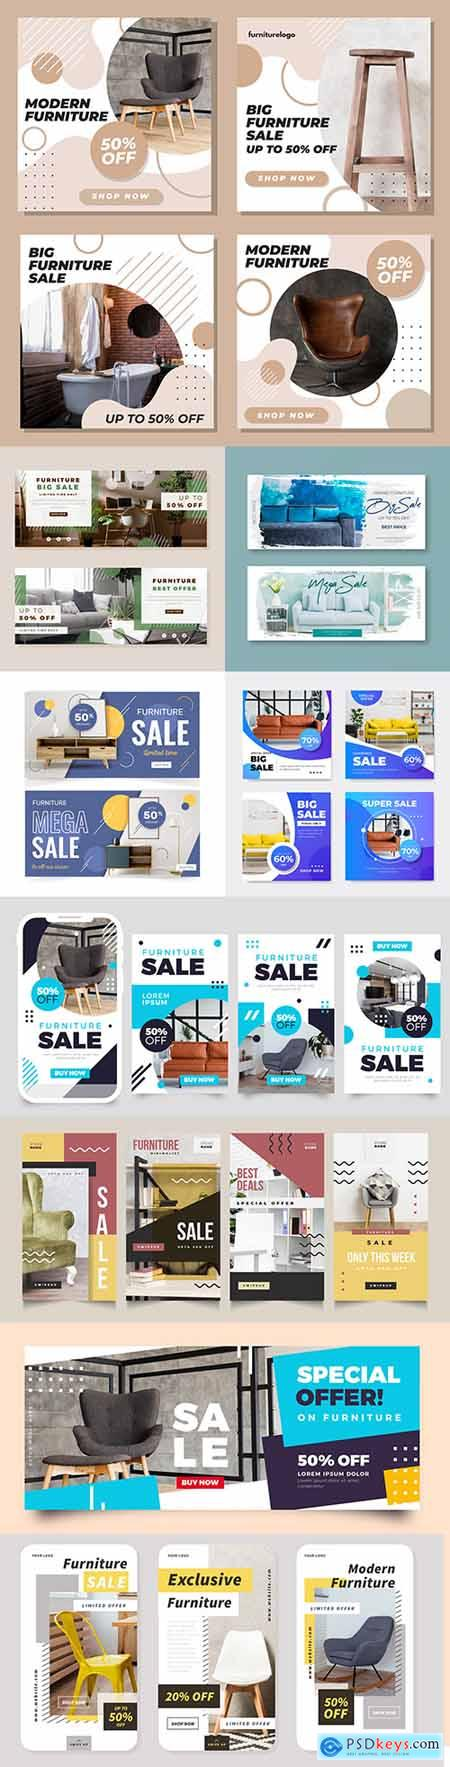 Furniture discounts and special offers design template